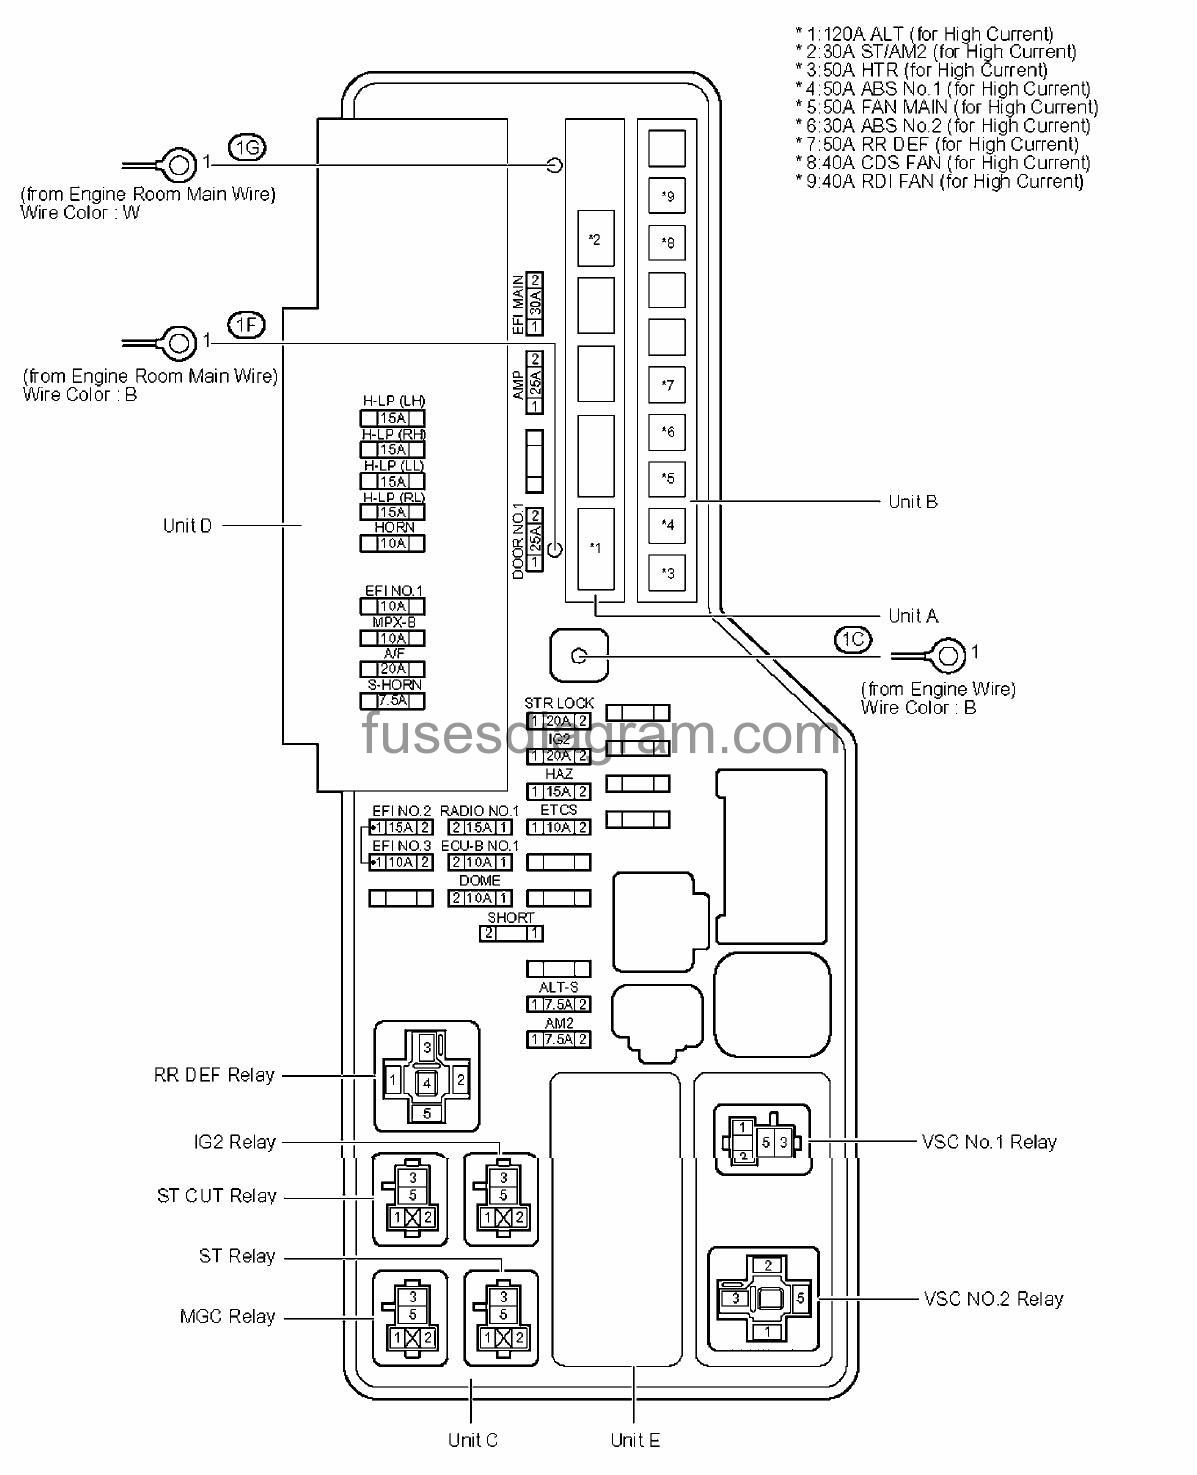 99 Camry Fuse Box Location Archive Of Automotive Wiring Diagram 2006 Toyota Sienna Interior 2000 Simple Rh David Huggett Co Uk 1999